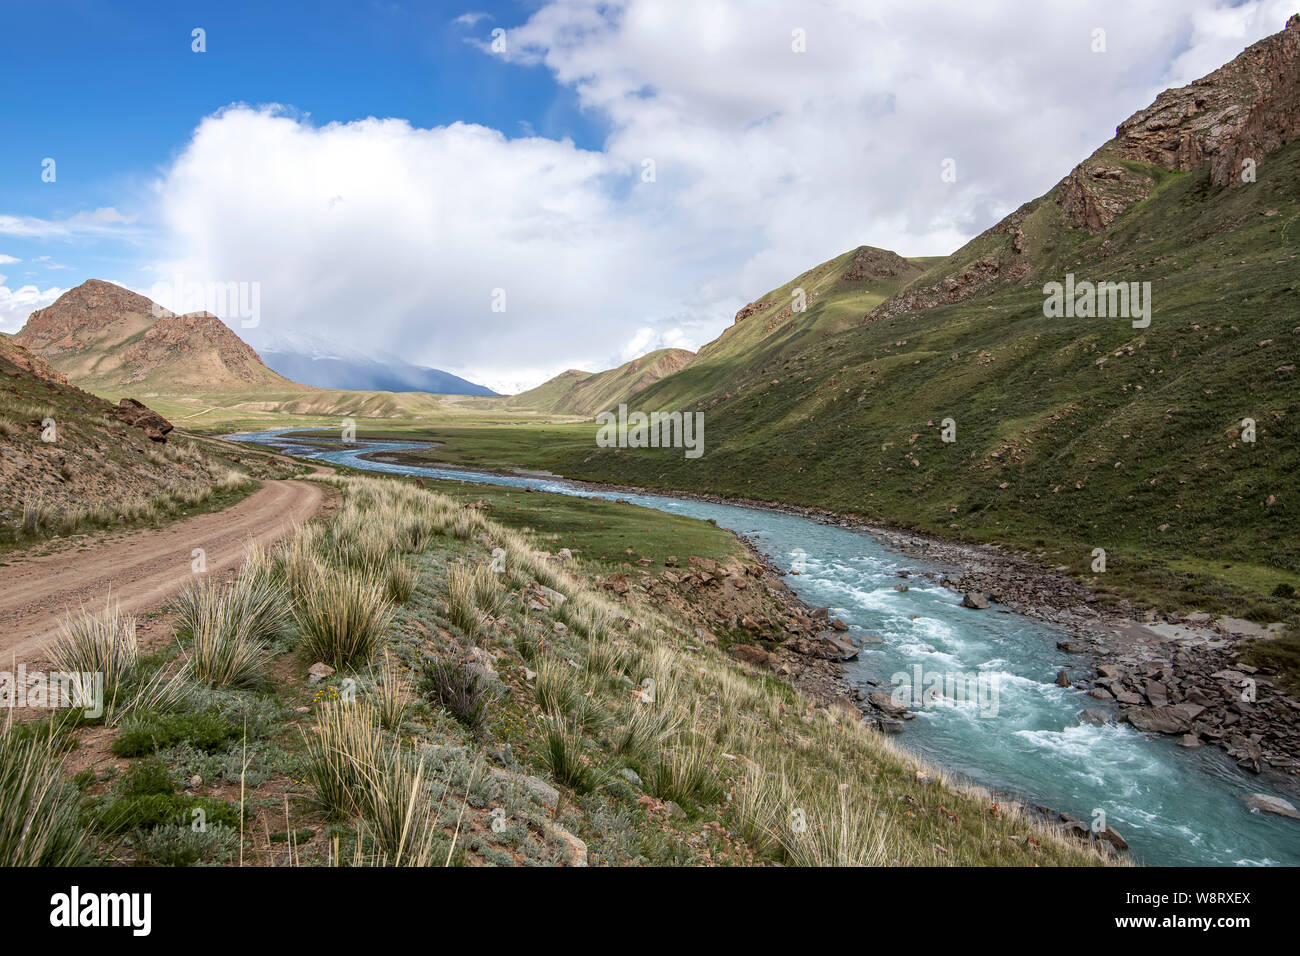 View of the river flowing between green hills with grass and stones in the foreground Kyrgyzstan. Tien Shan Stock Photo